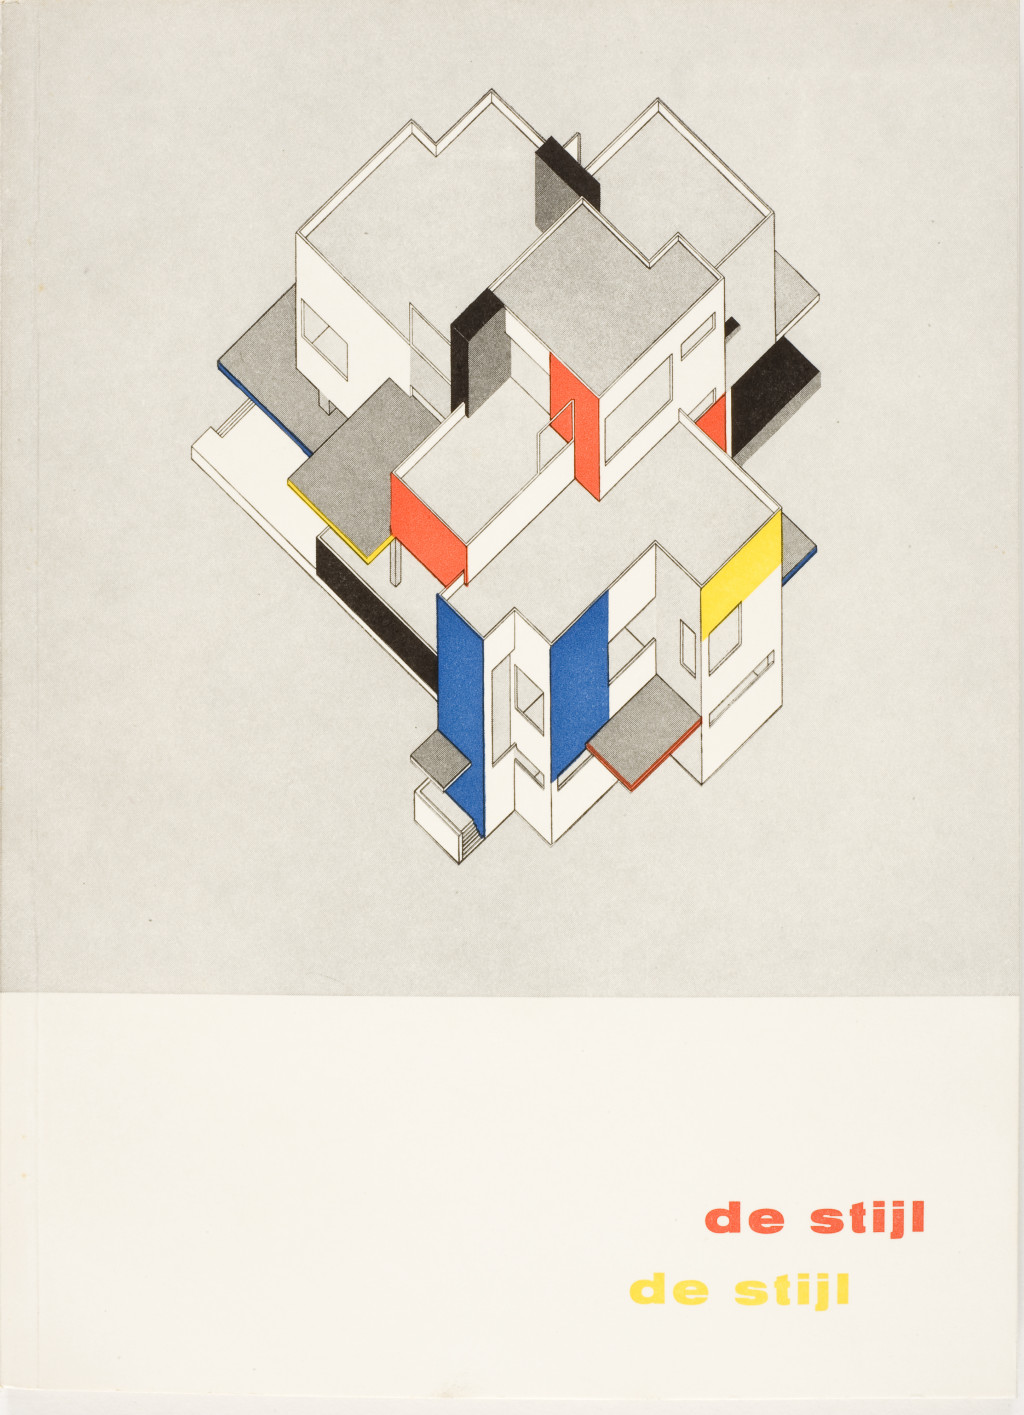 Fig. 3 Willem Sandberg, Cover of De Stijl exhibition catalogue, 1951, letterpress, 26 x 19.2 cm